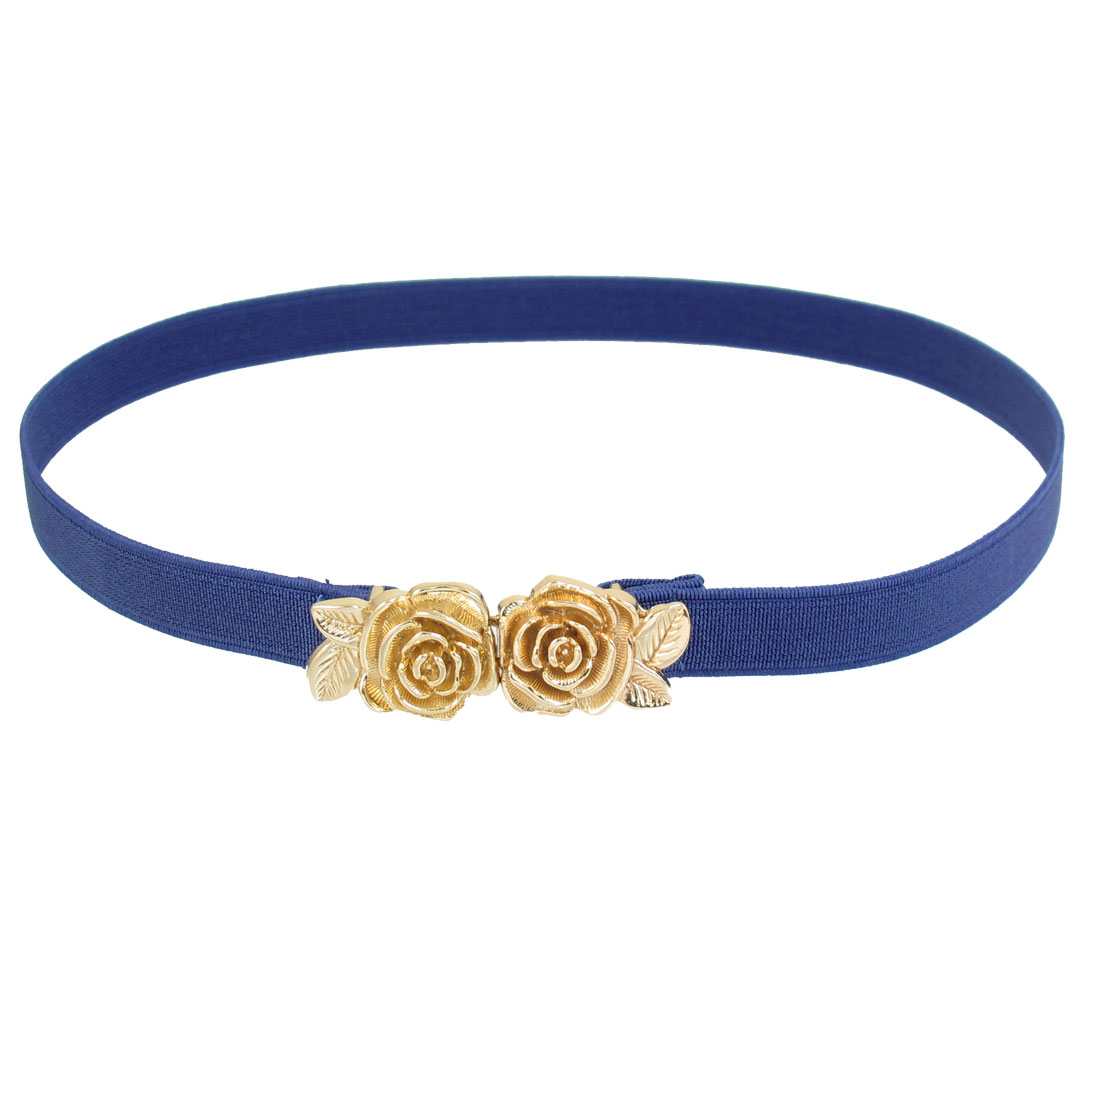 Ladies Dual Rose Gold Tone Metal Interlocking Buckle Elastic Waist Belt Blue